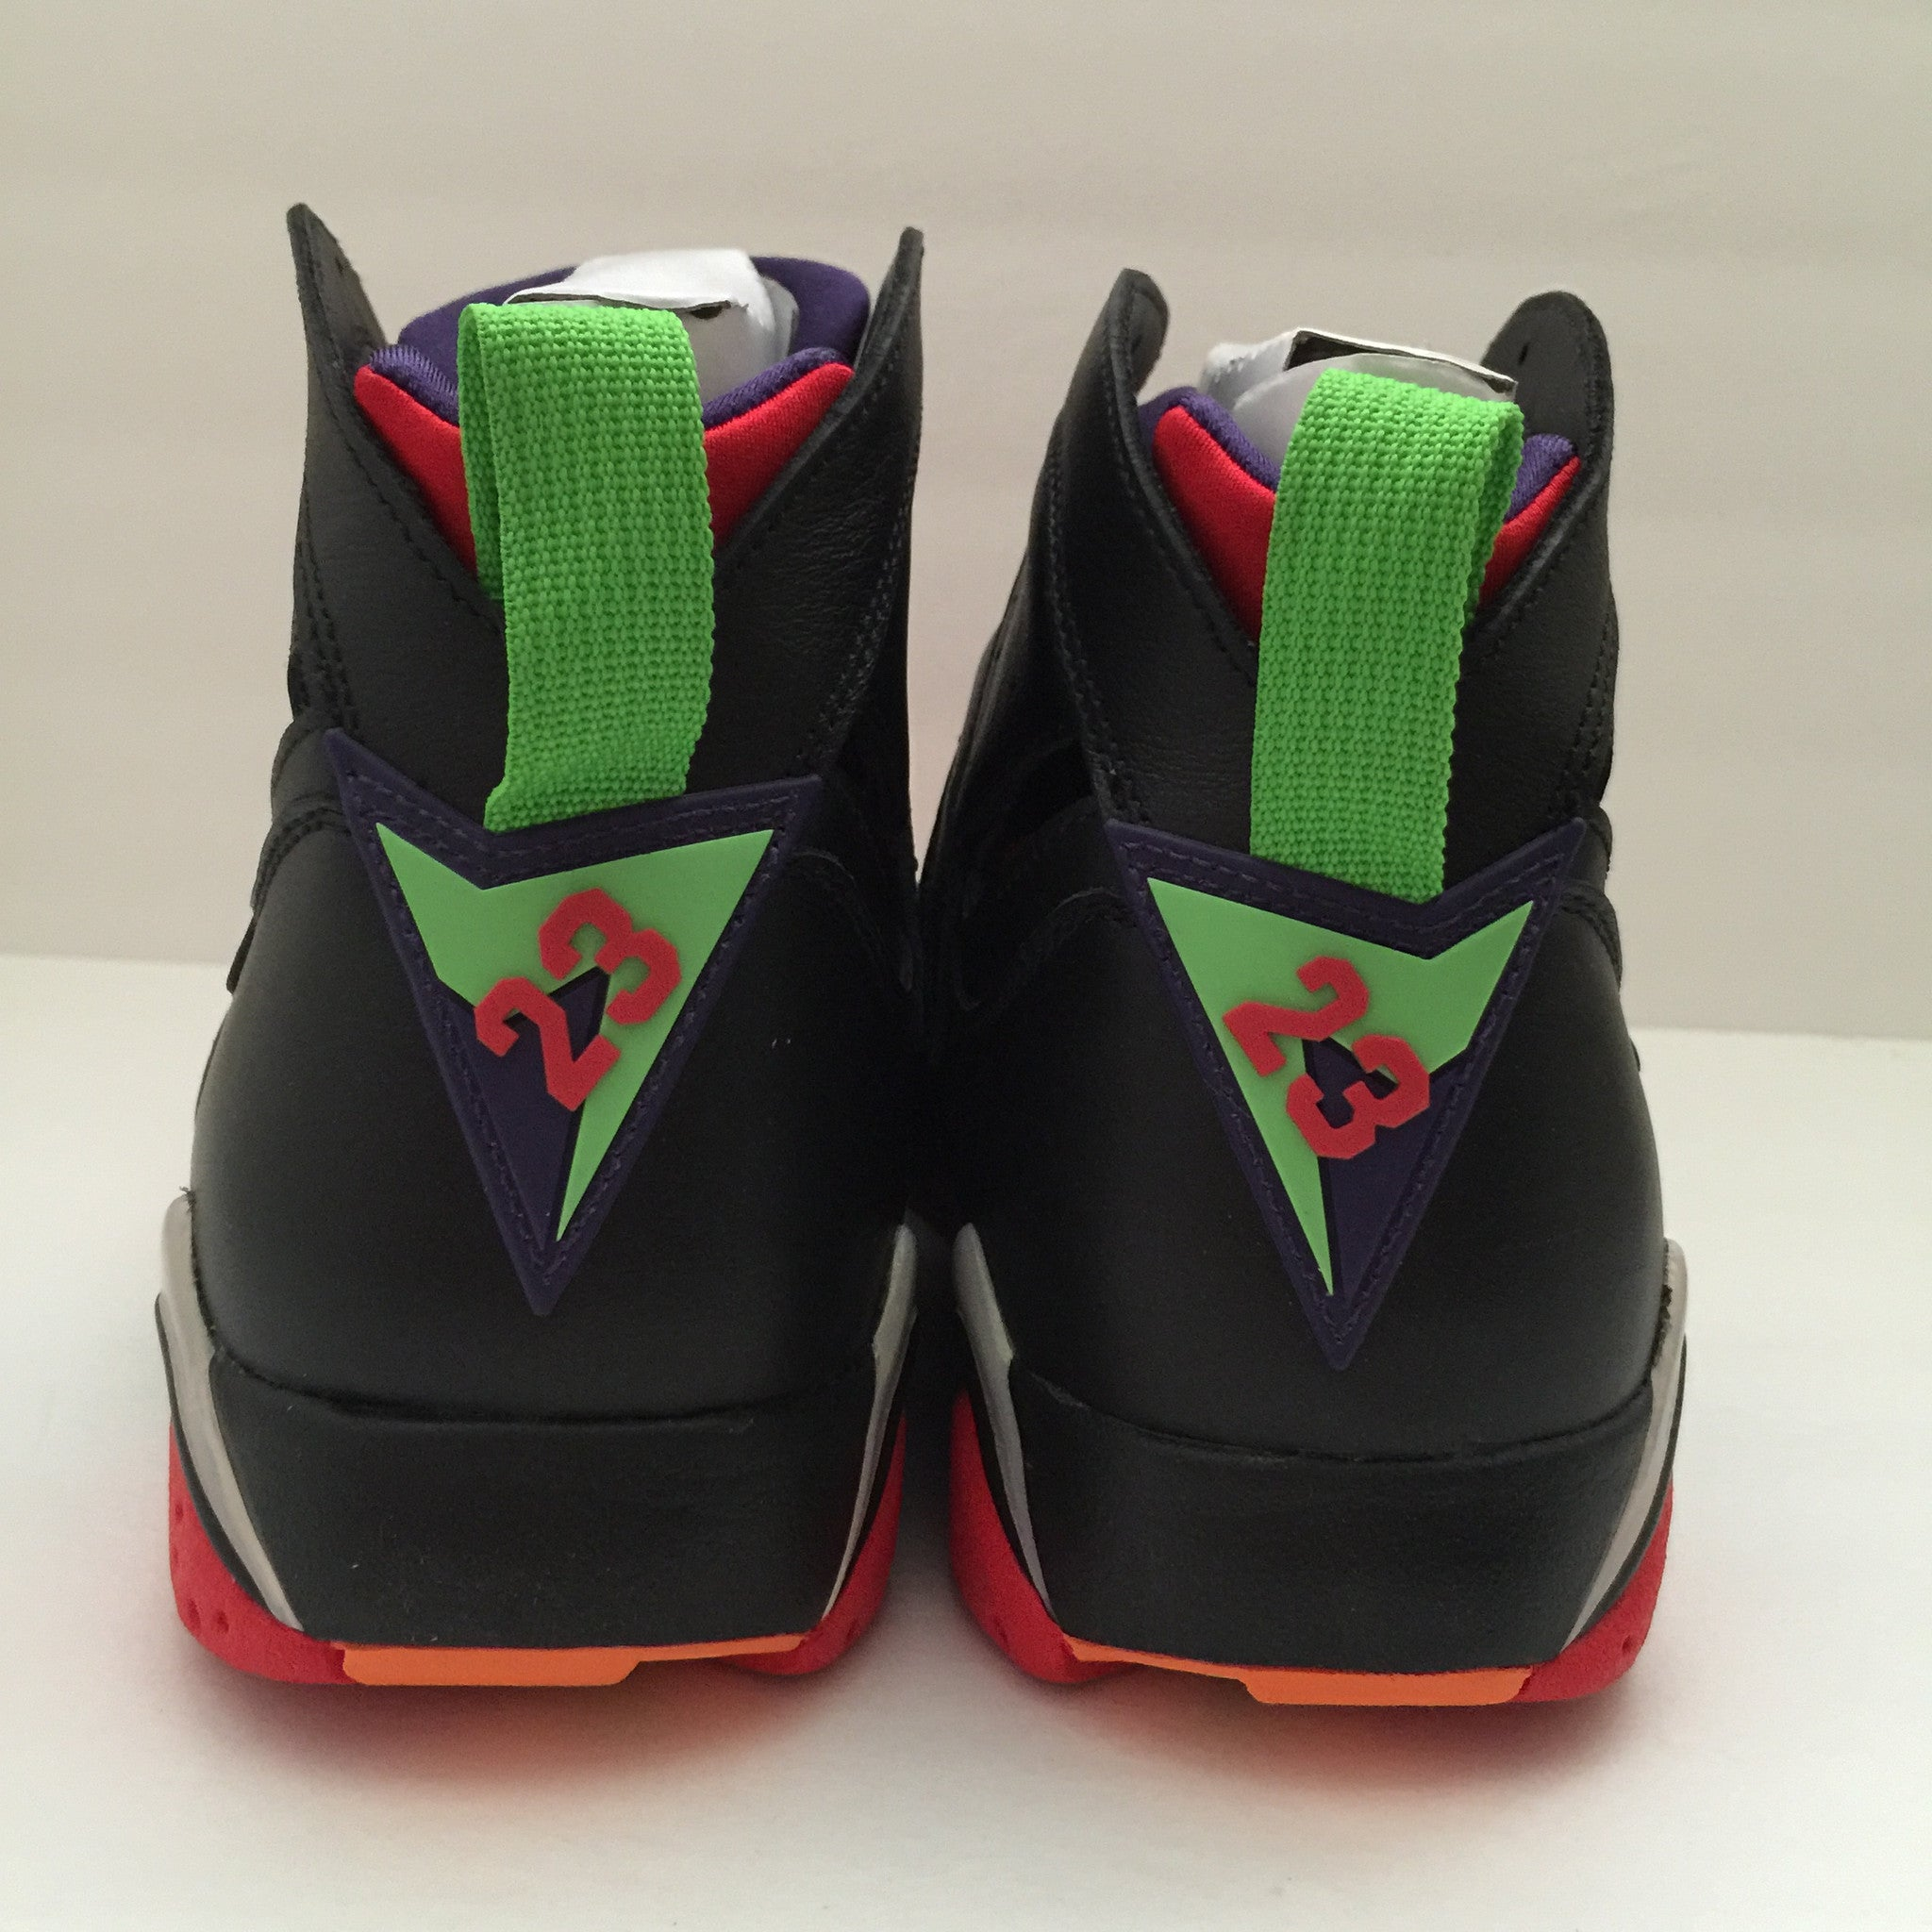 DS Nike Air Jordan 7 Retro Marvin The Martian Size 9.5/Size 10 - DOPEFOOT  - 5